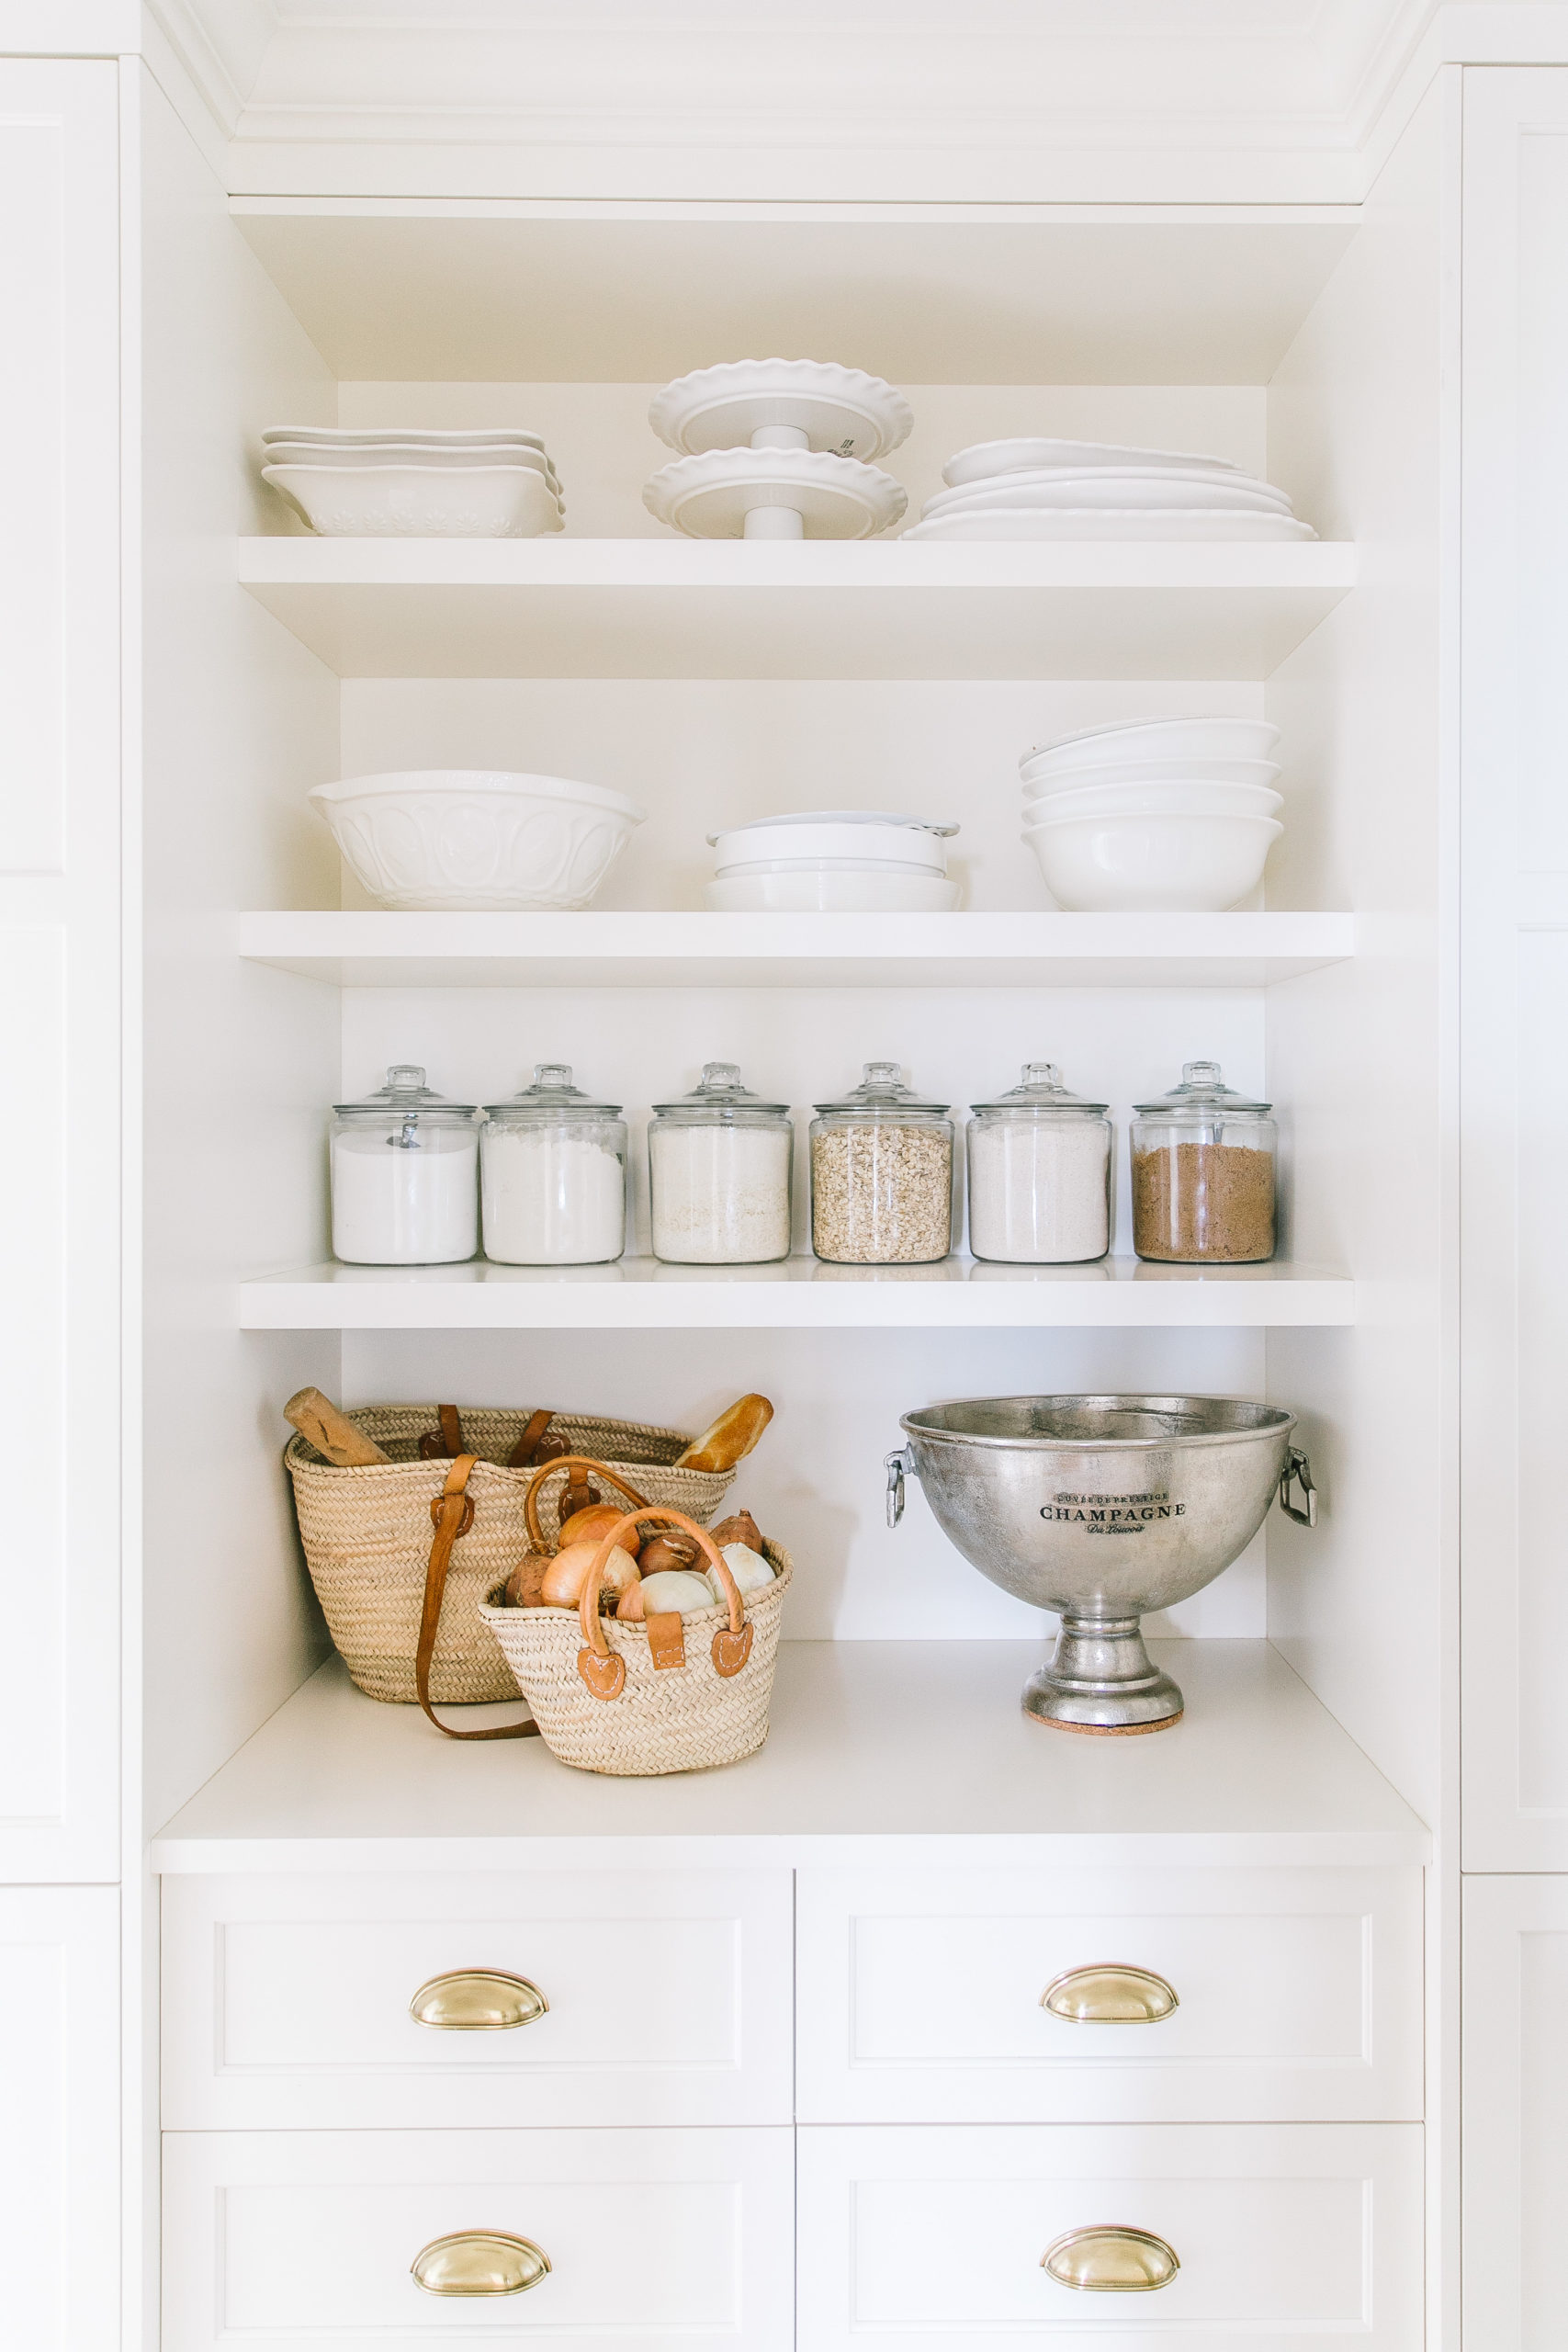 Our white butler's pantry reveal with an arched doorway, vintage chandelier lighting and open shelving with these white bowls, baskets and glass jars for storage!